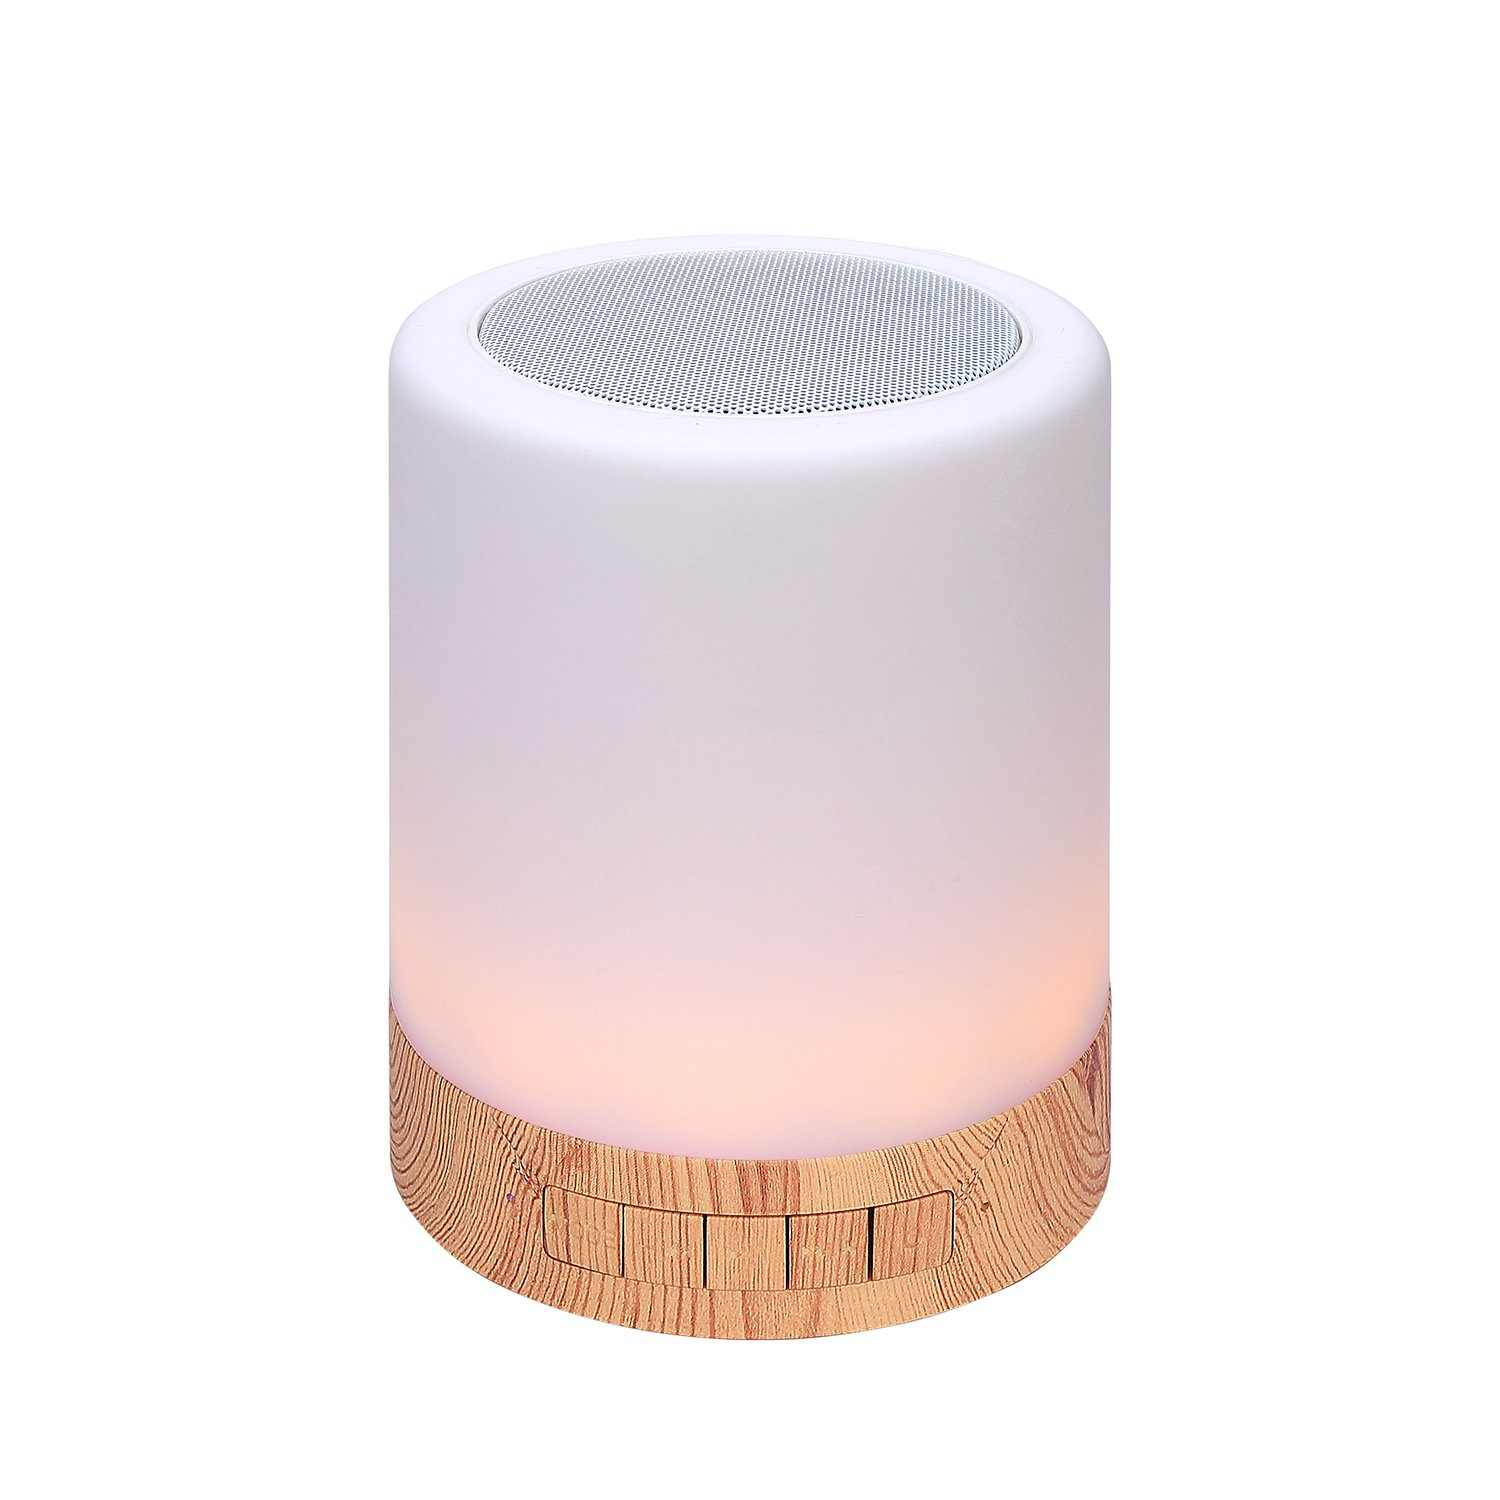 Illuminating Table Lamp with Bluetooth Speaker – Perfect for Bedside Night Stand, Desk or Table – Six Color LED Light with Touch Control – Audio Speaker - Faux Wood Base